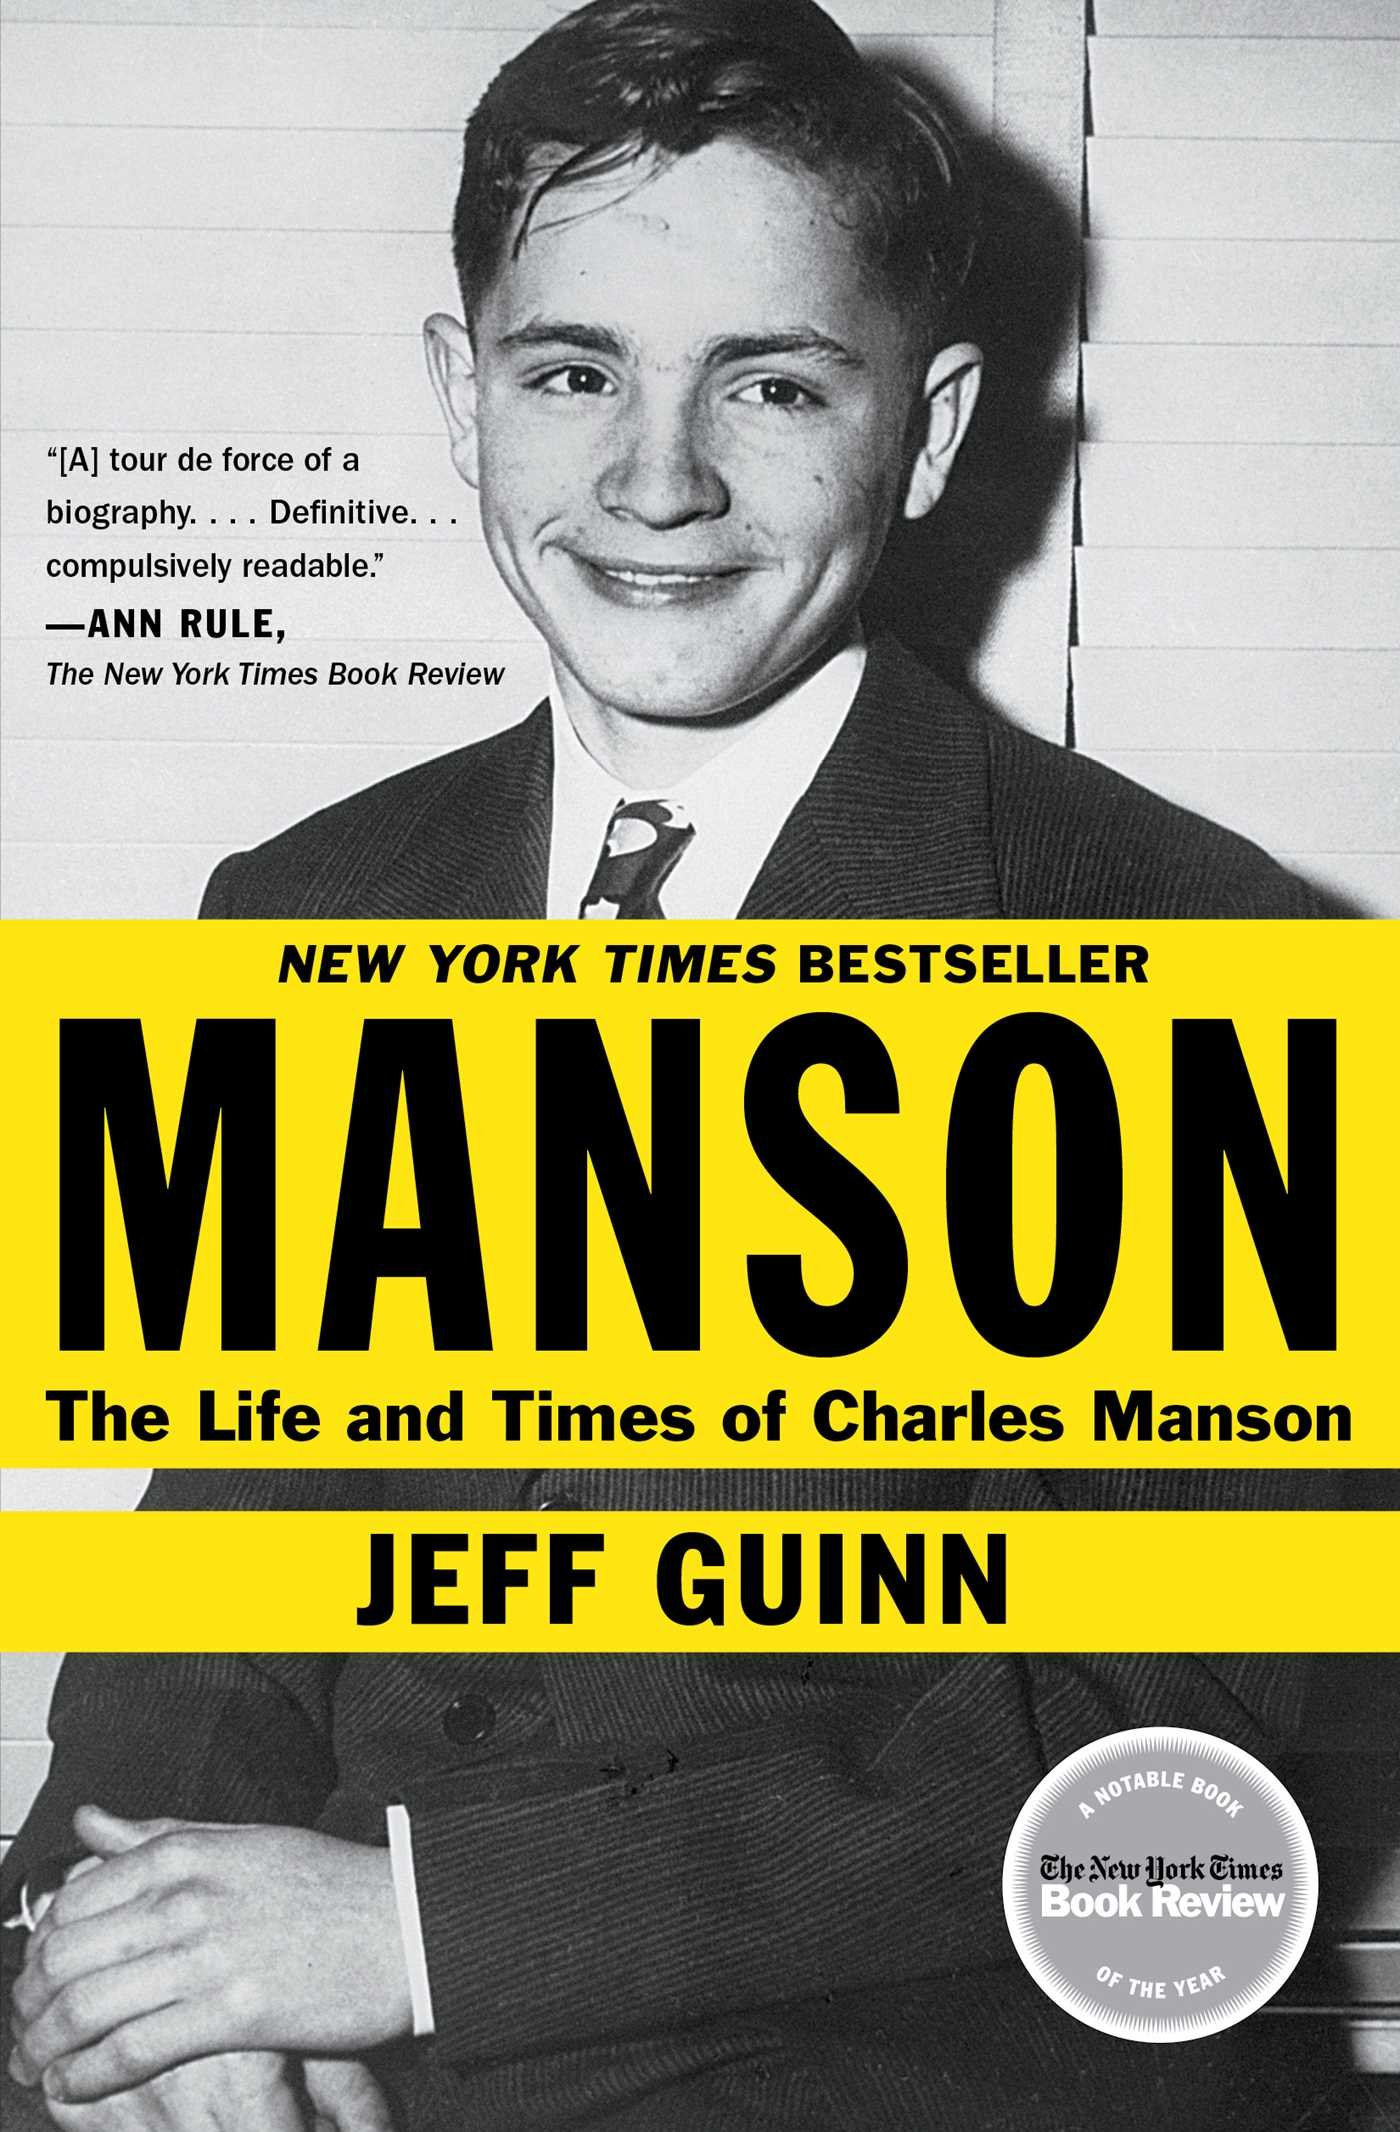 Image result for manson:the life and times of charles manson